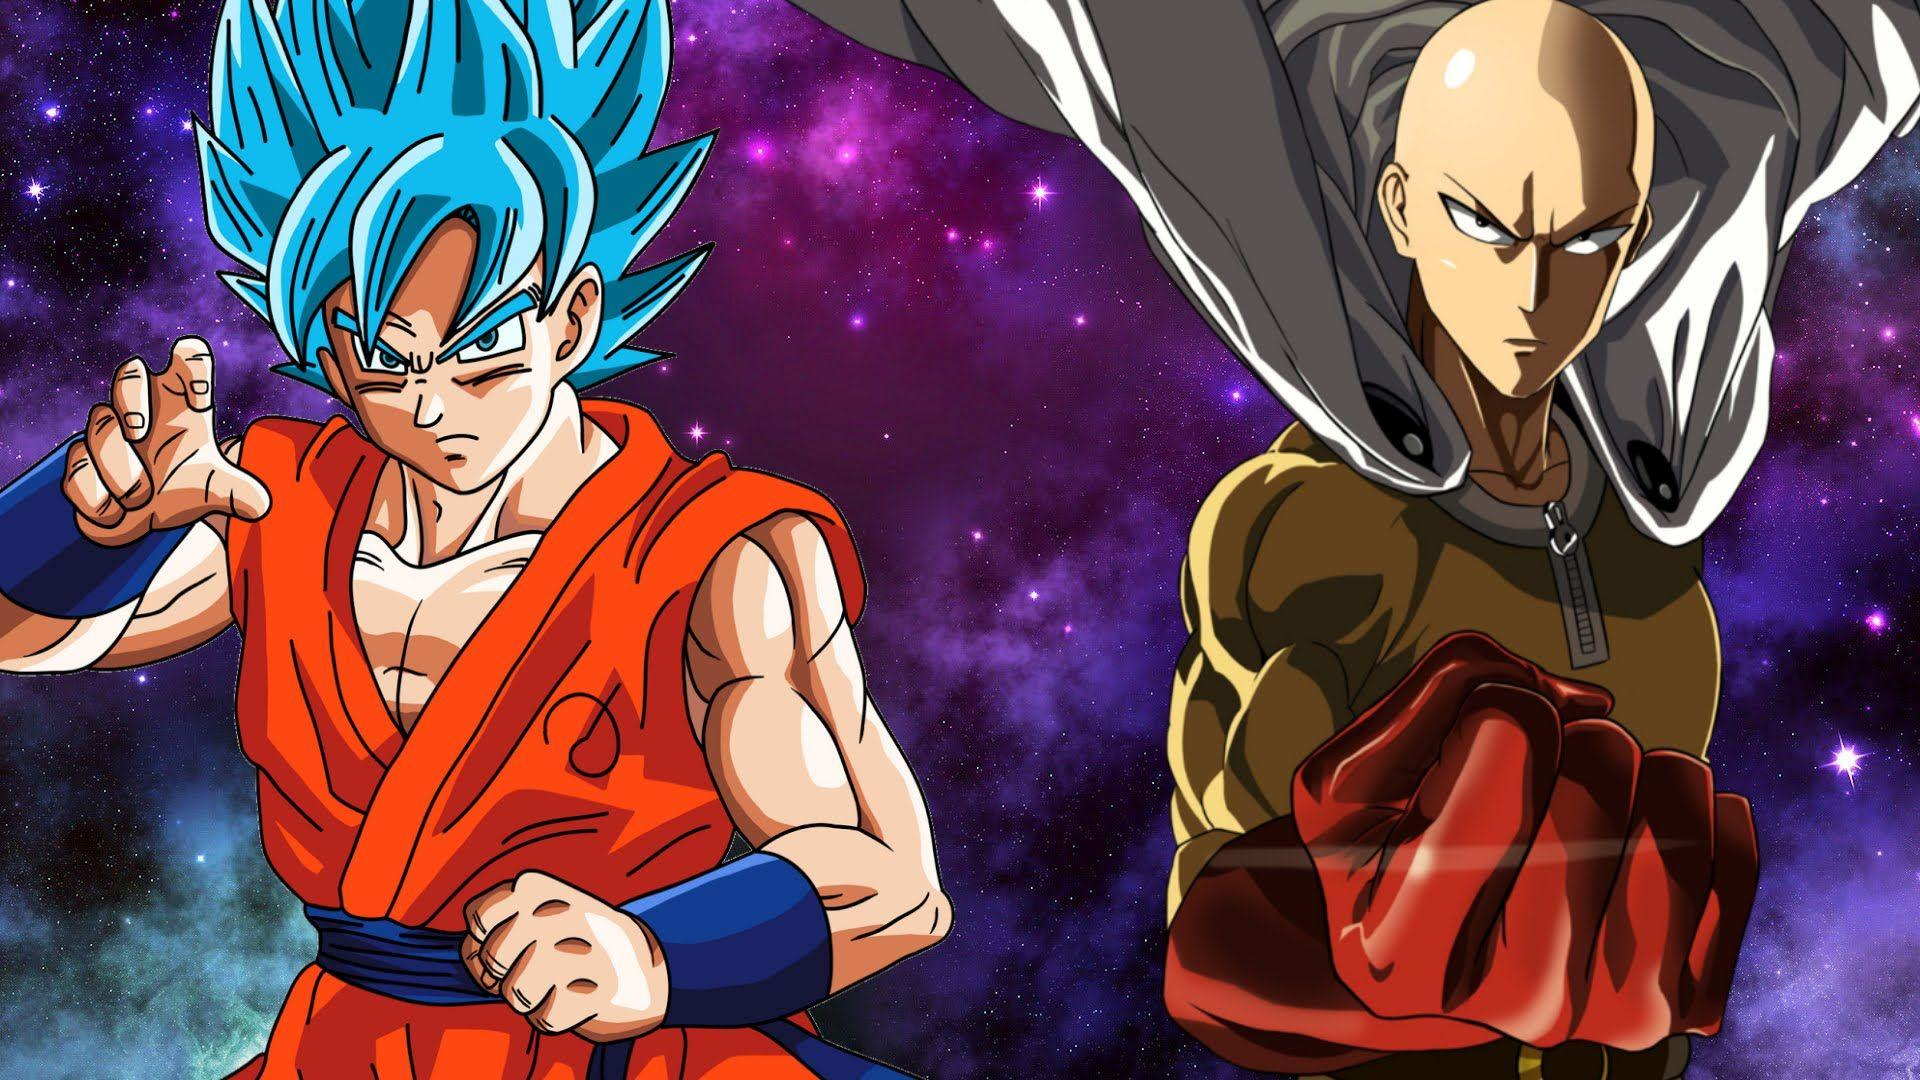 Battle between Goku and Saitama